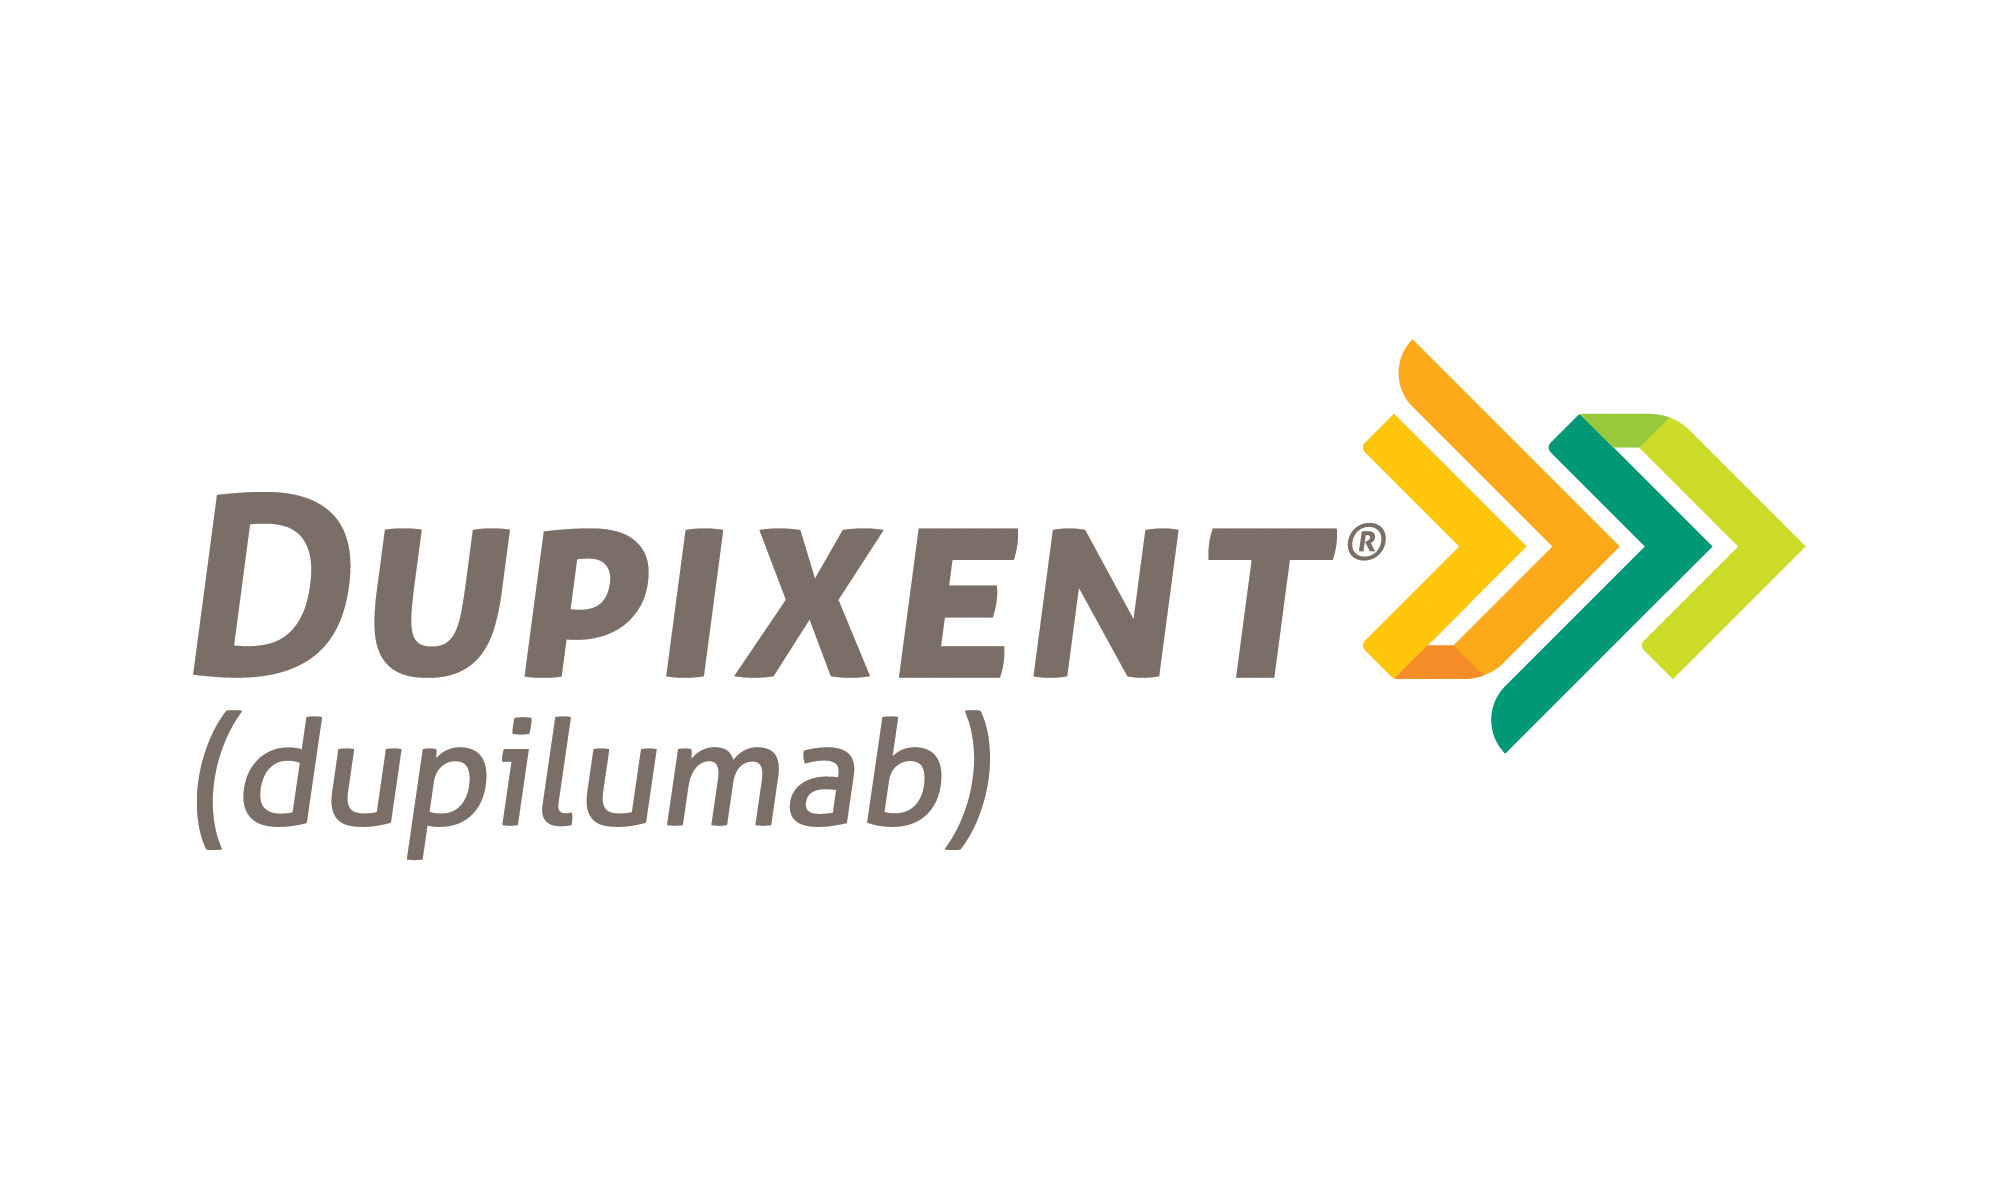 FDA Approves New Dupixent Pre-filled Pen Designed to Support More Convenient Self-Administration image